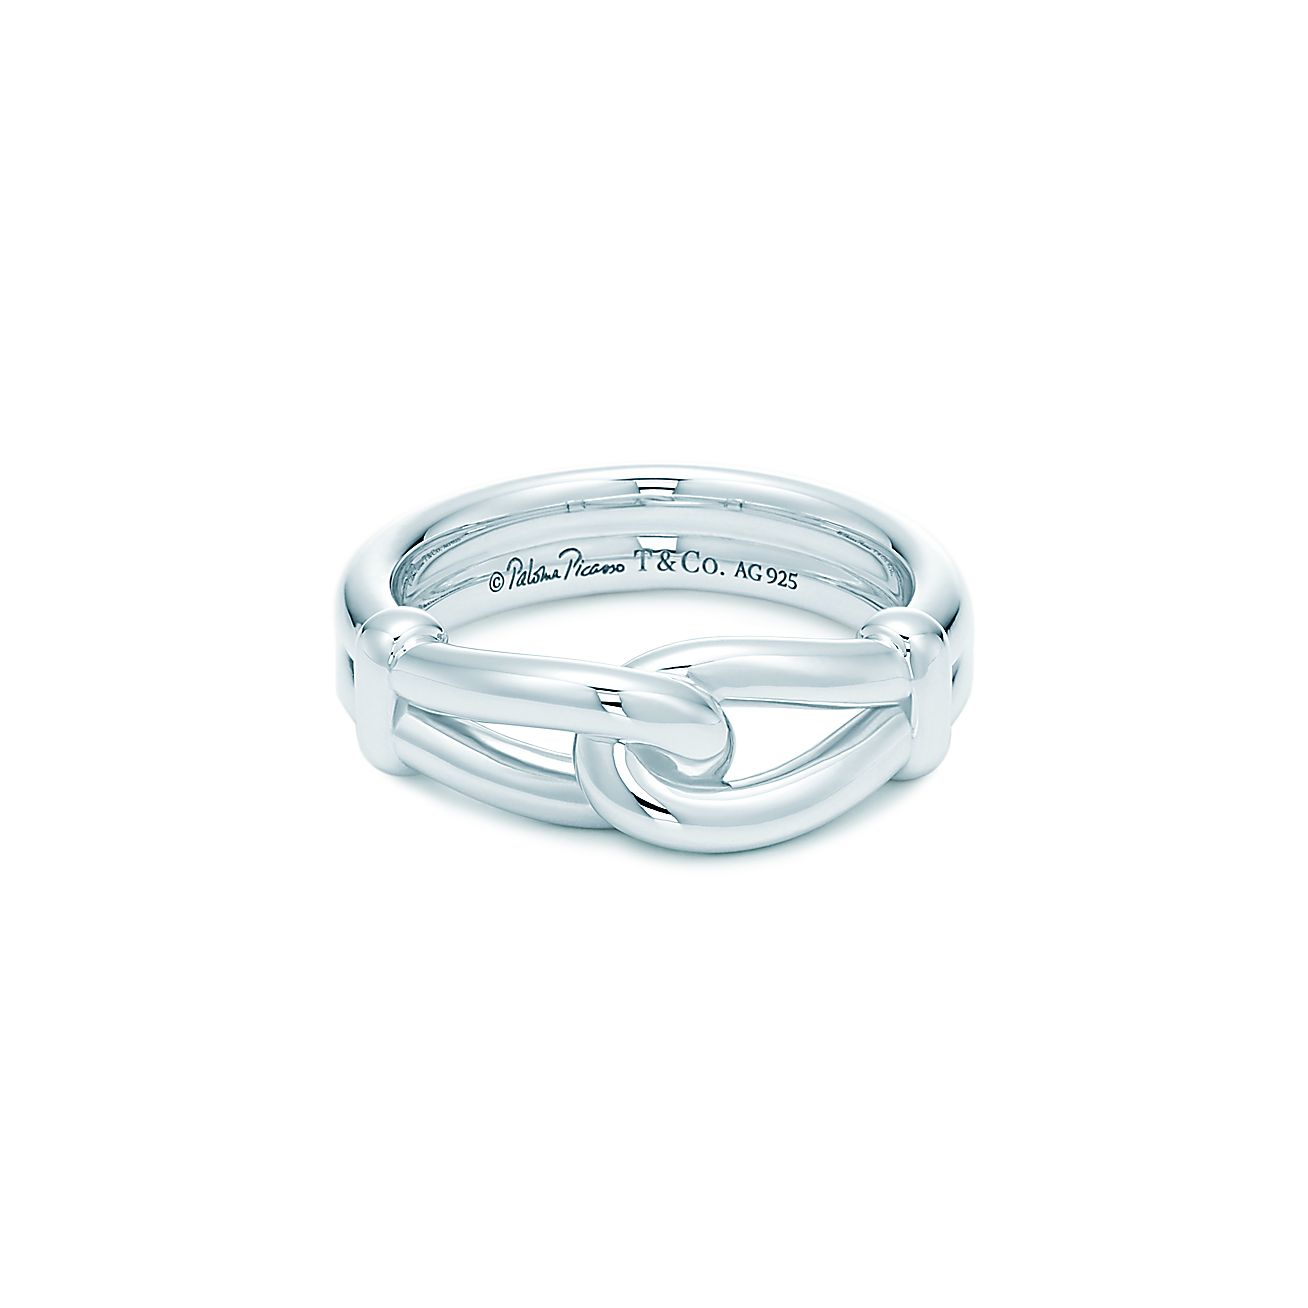 Paloma picasso knot ring in sterling silver tiffany co for Tiffany mens wedding ring